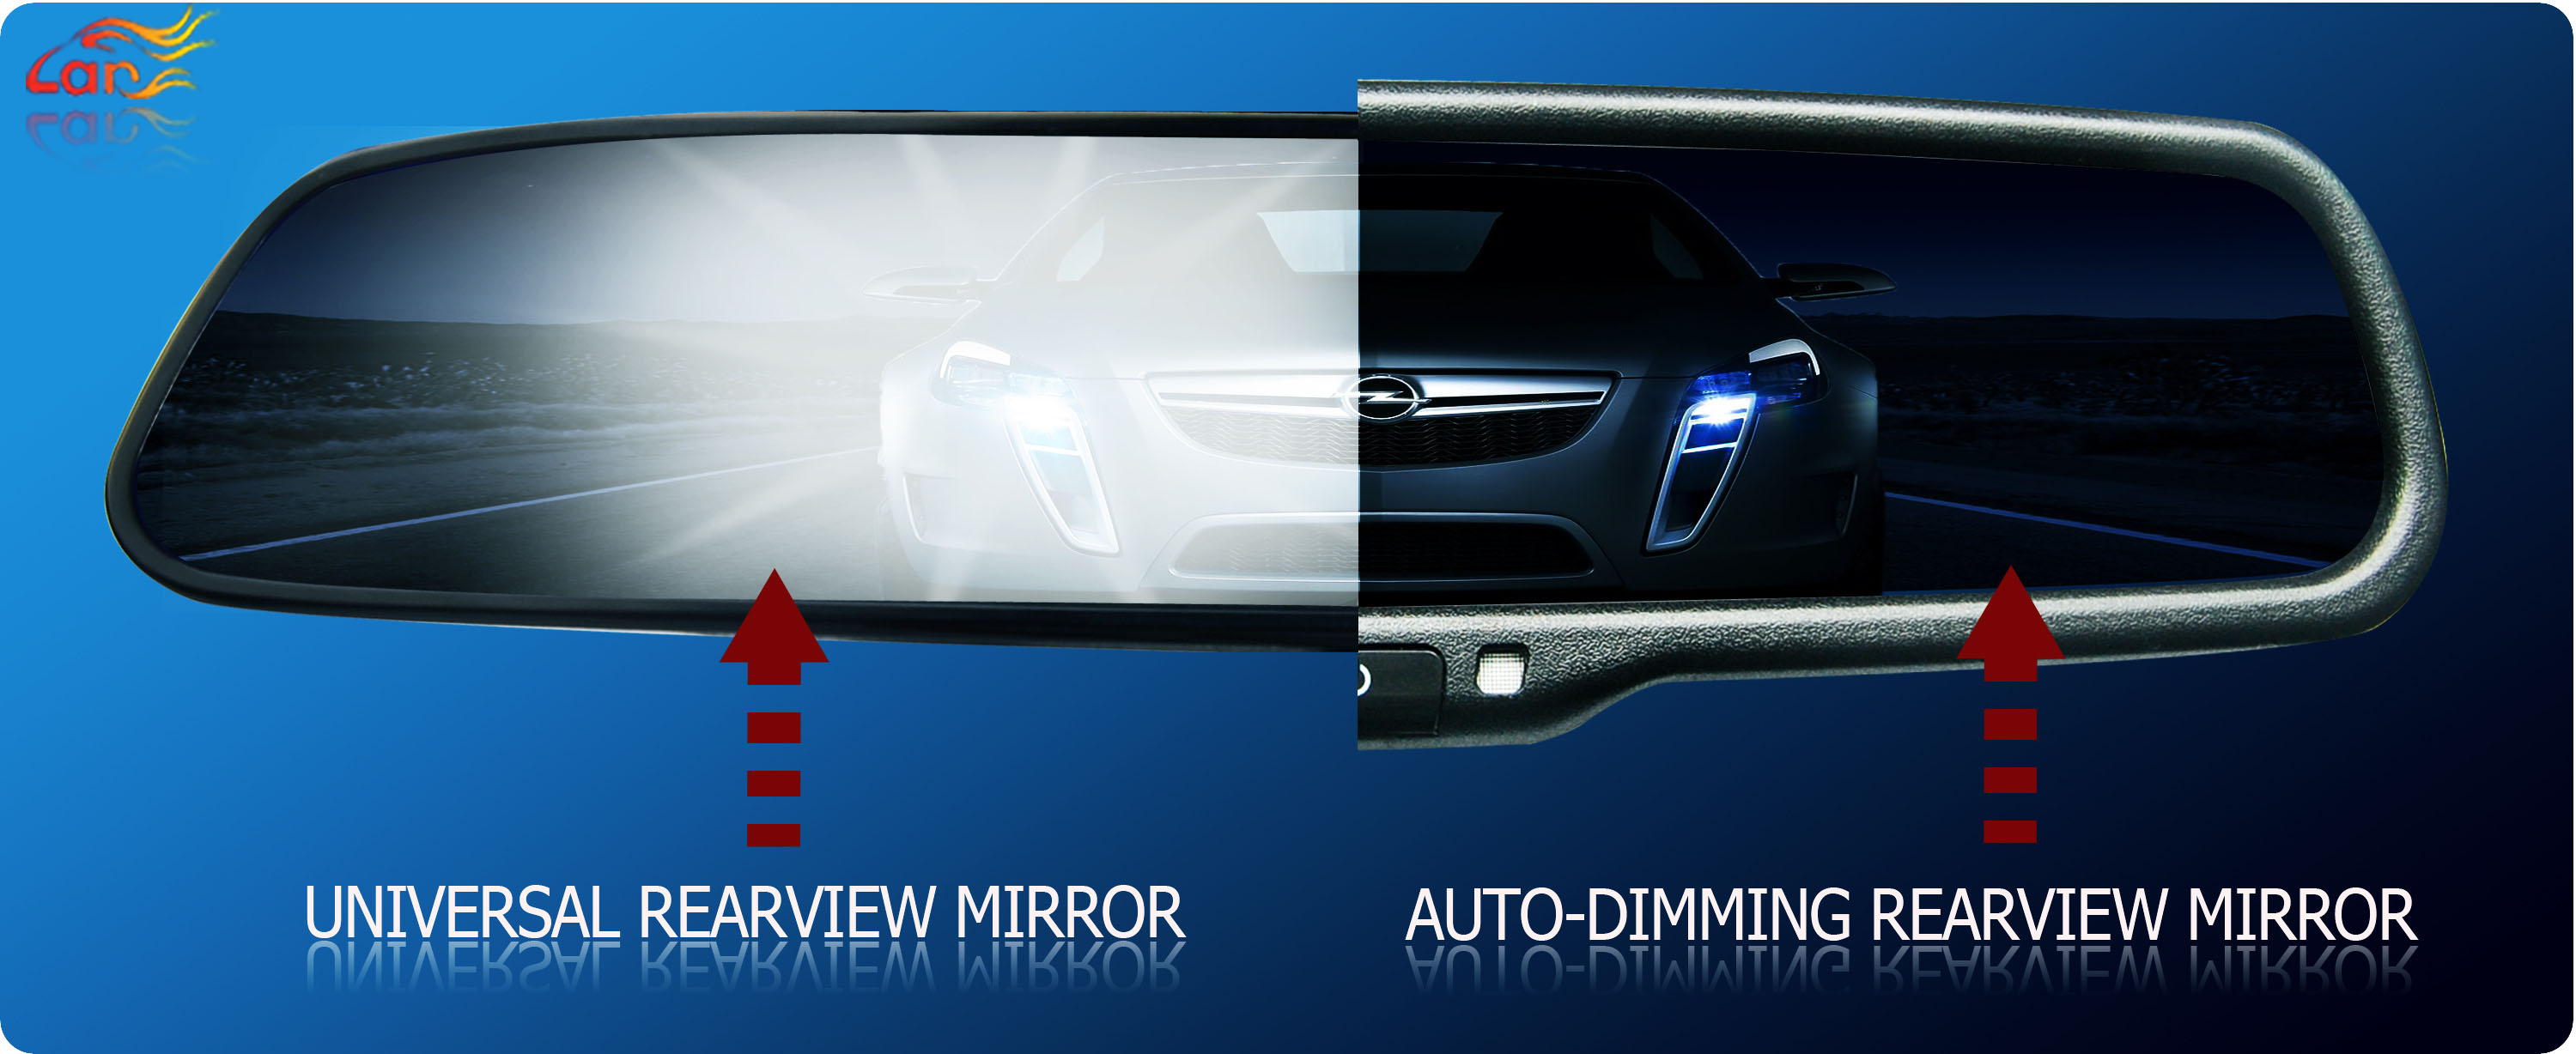 3 5 Inch Rearview Mirror Combined With Autodimming And